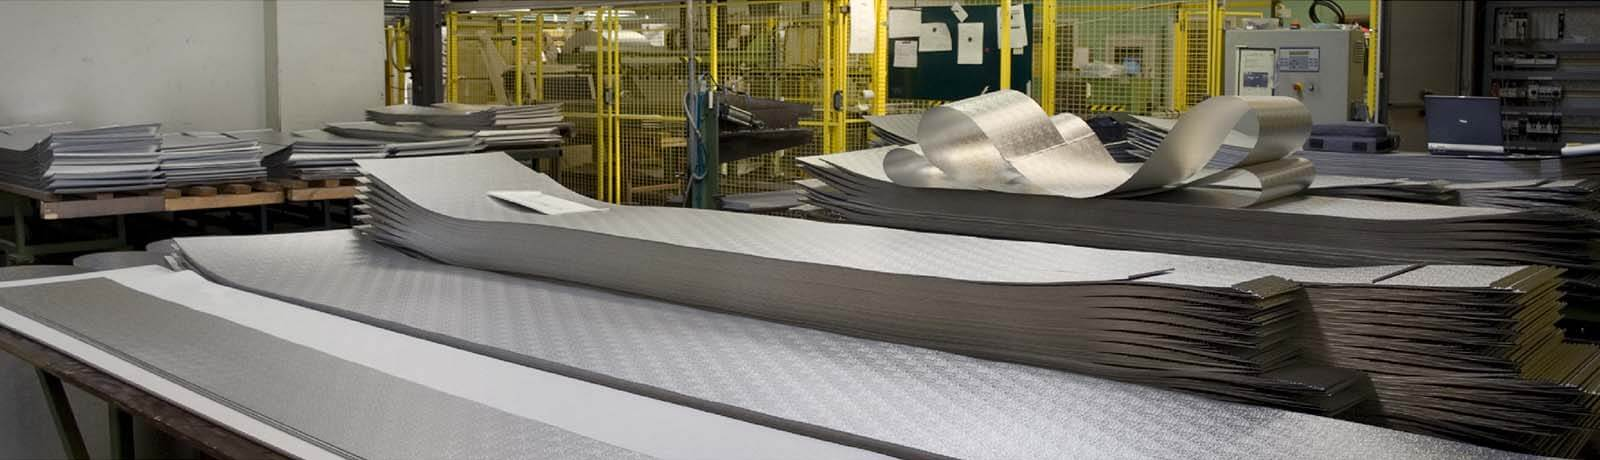 Metal Production & Fabrication Industry Solutions